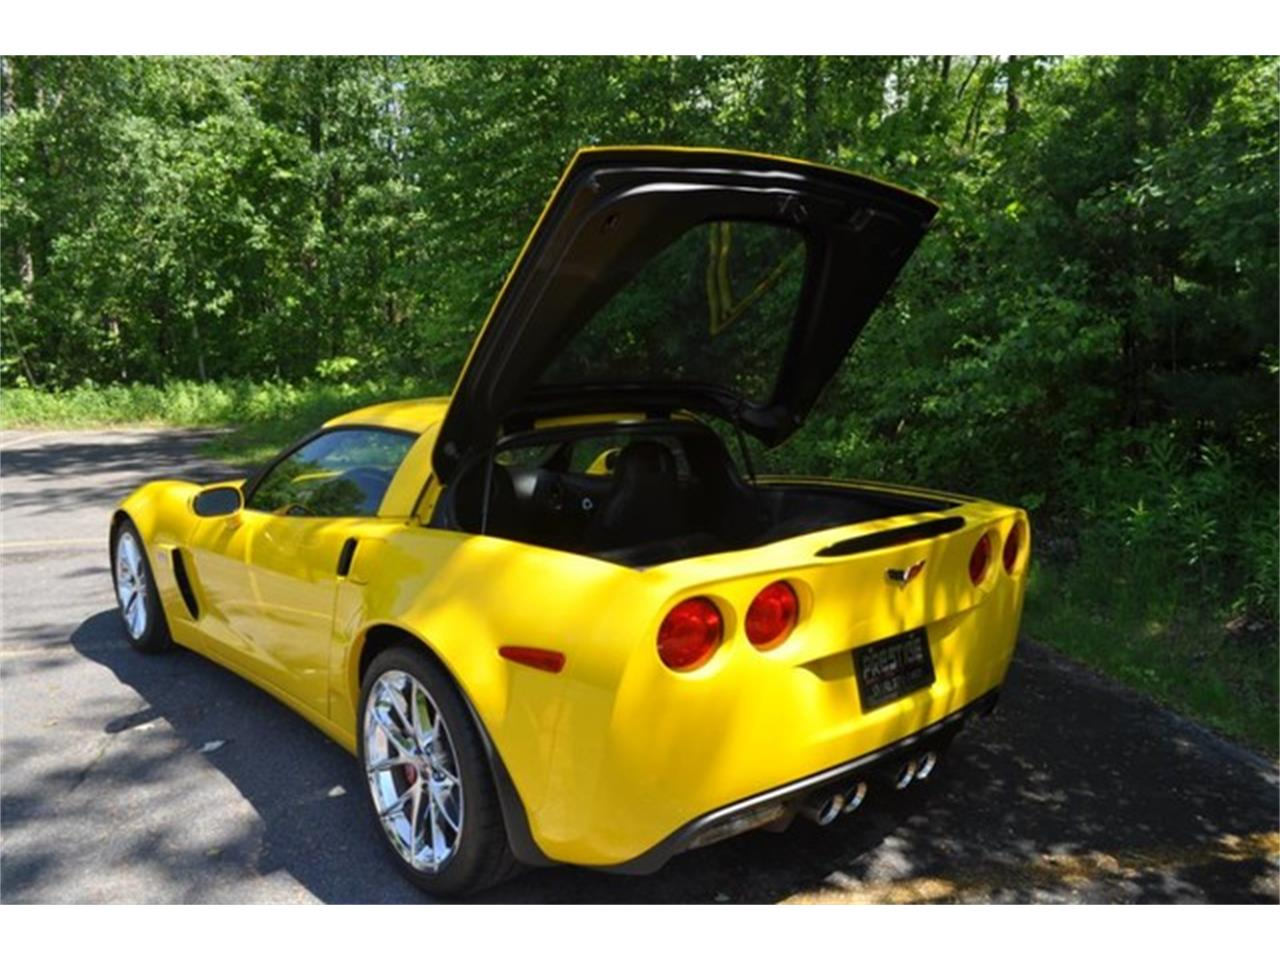 Large Picture of 2010 Chevrolet Corvette located in New York - $49,999.00 Offered by Prestige Motor Car Co. - L74B